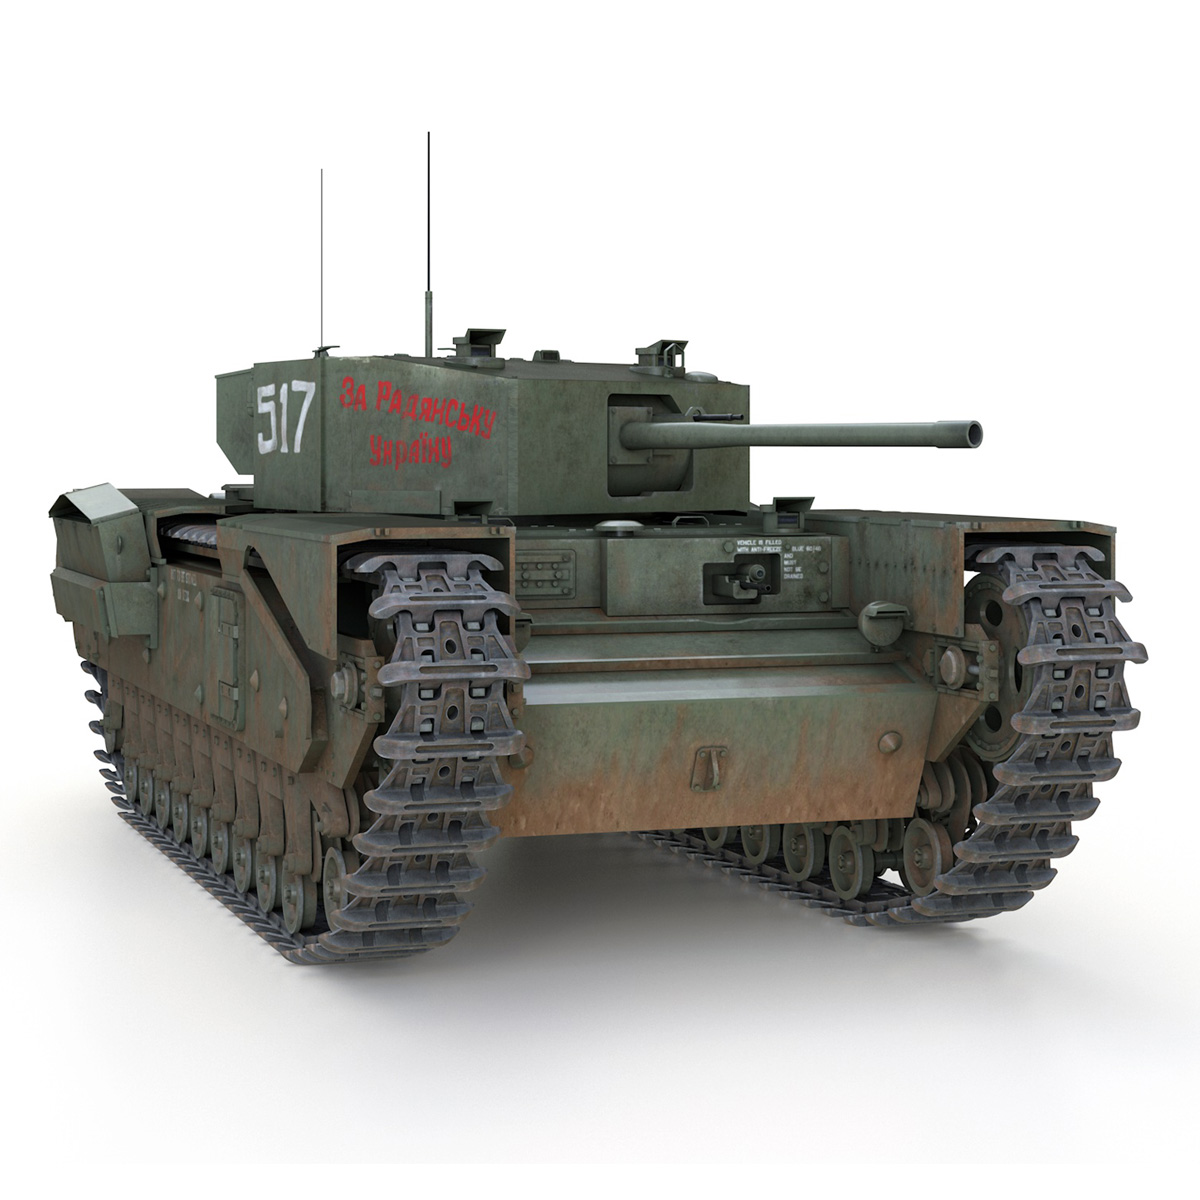 churchill mk iii – 517 – soviet army 3d model 3ds fbx c4d lwo obj 272981